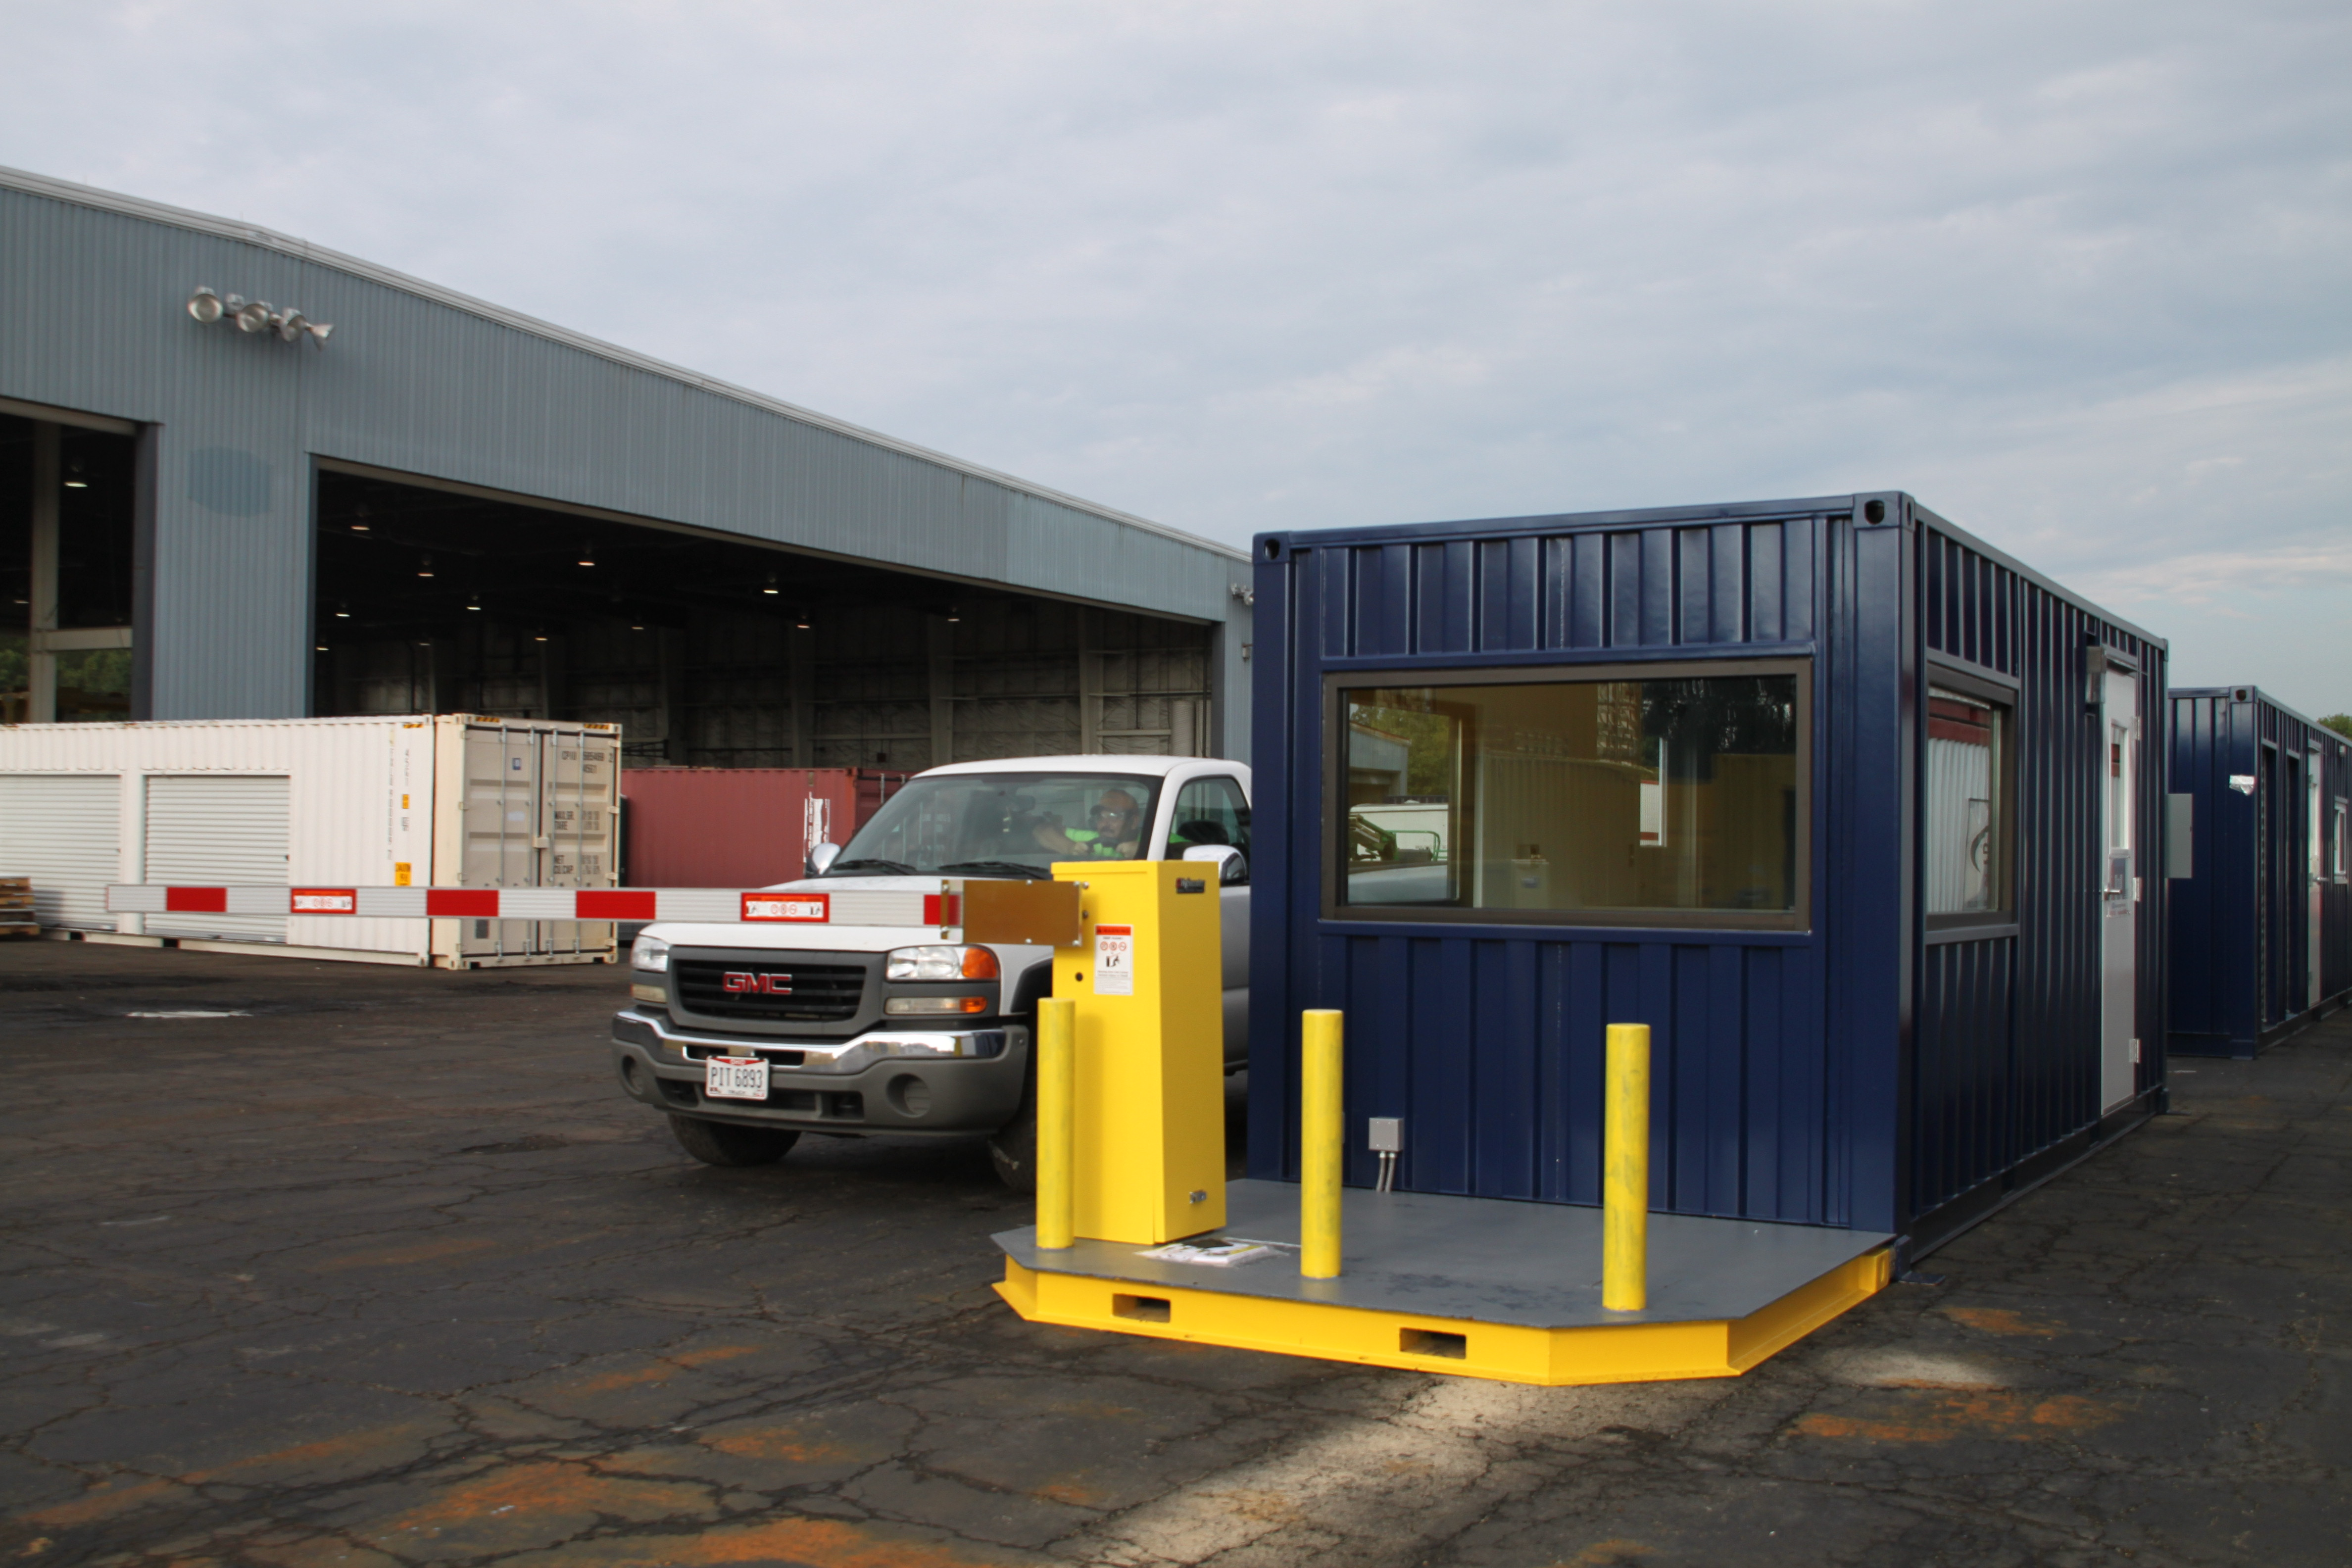 MSSI, Modular Security Systems Inc, vehicle access control, modular vehicle access control, modular guard booth with vehicle barrier arms, vehicle access control portal, modular vehicle access control portal, portable vehicle access control, vehicle barrier arms, portable vehicle barrier arms, vehicle access control with a guard office, vehicle barrier arms in a guard house, vehicle barrier gate